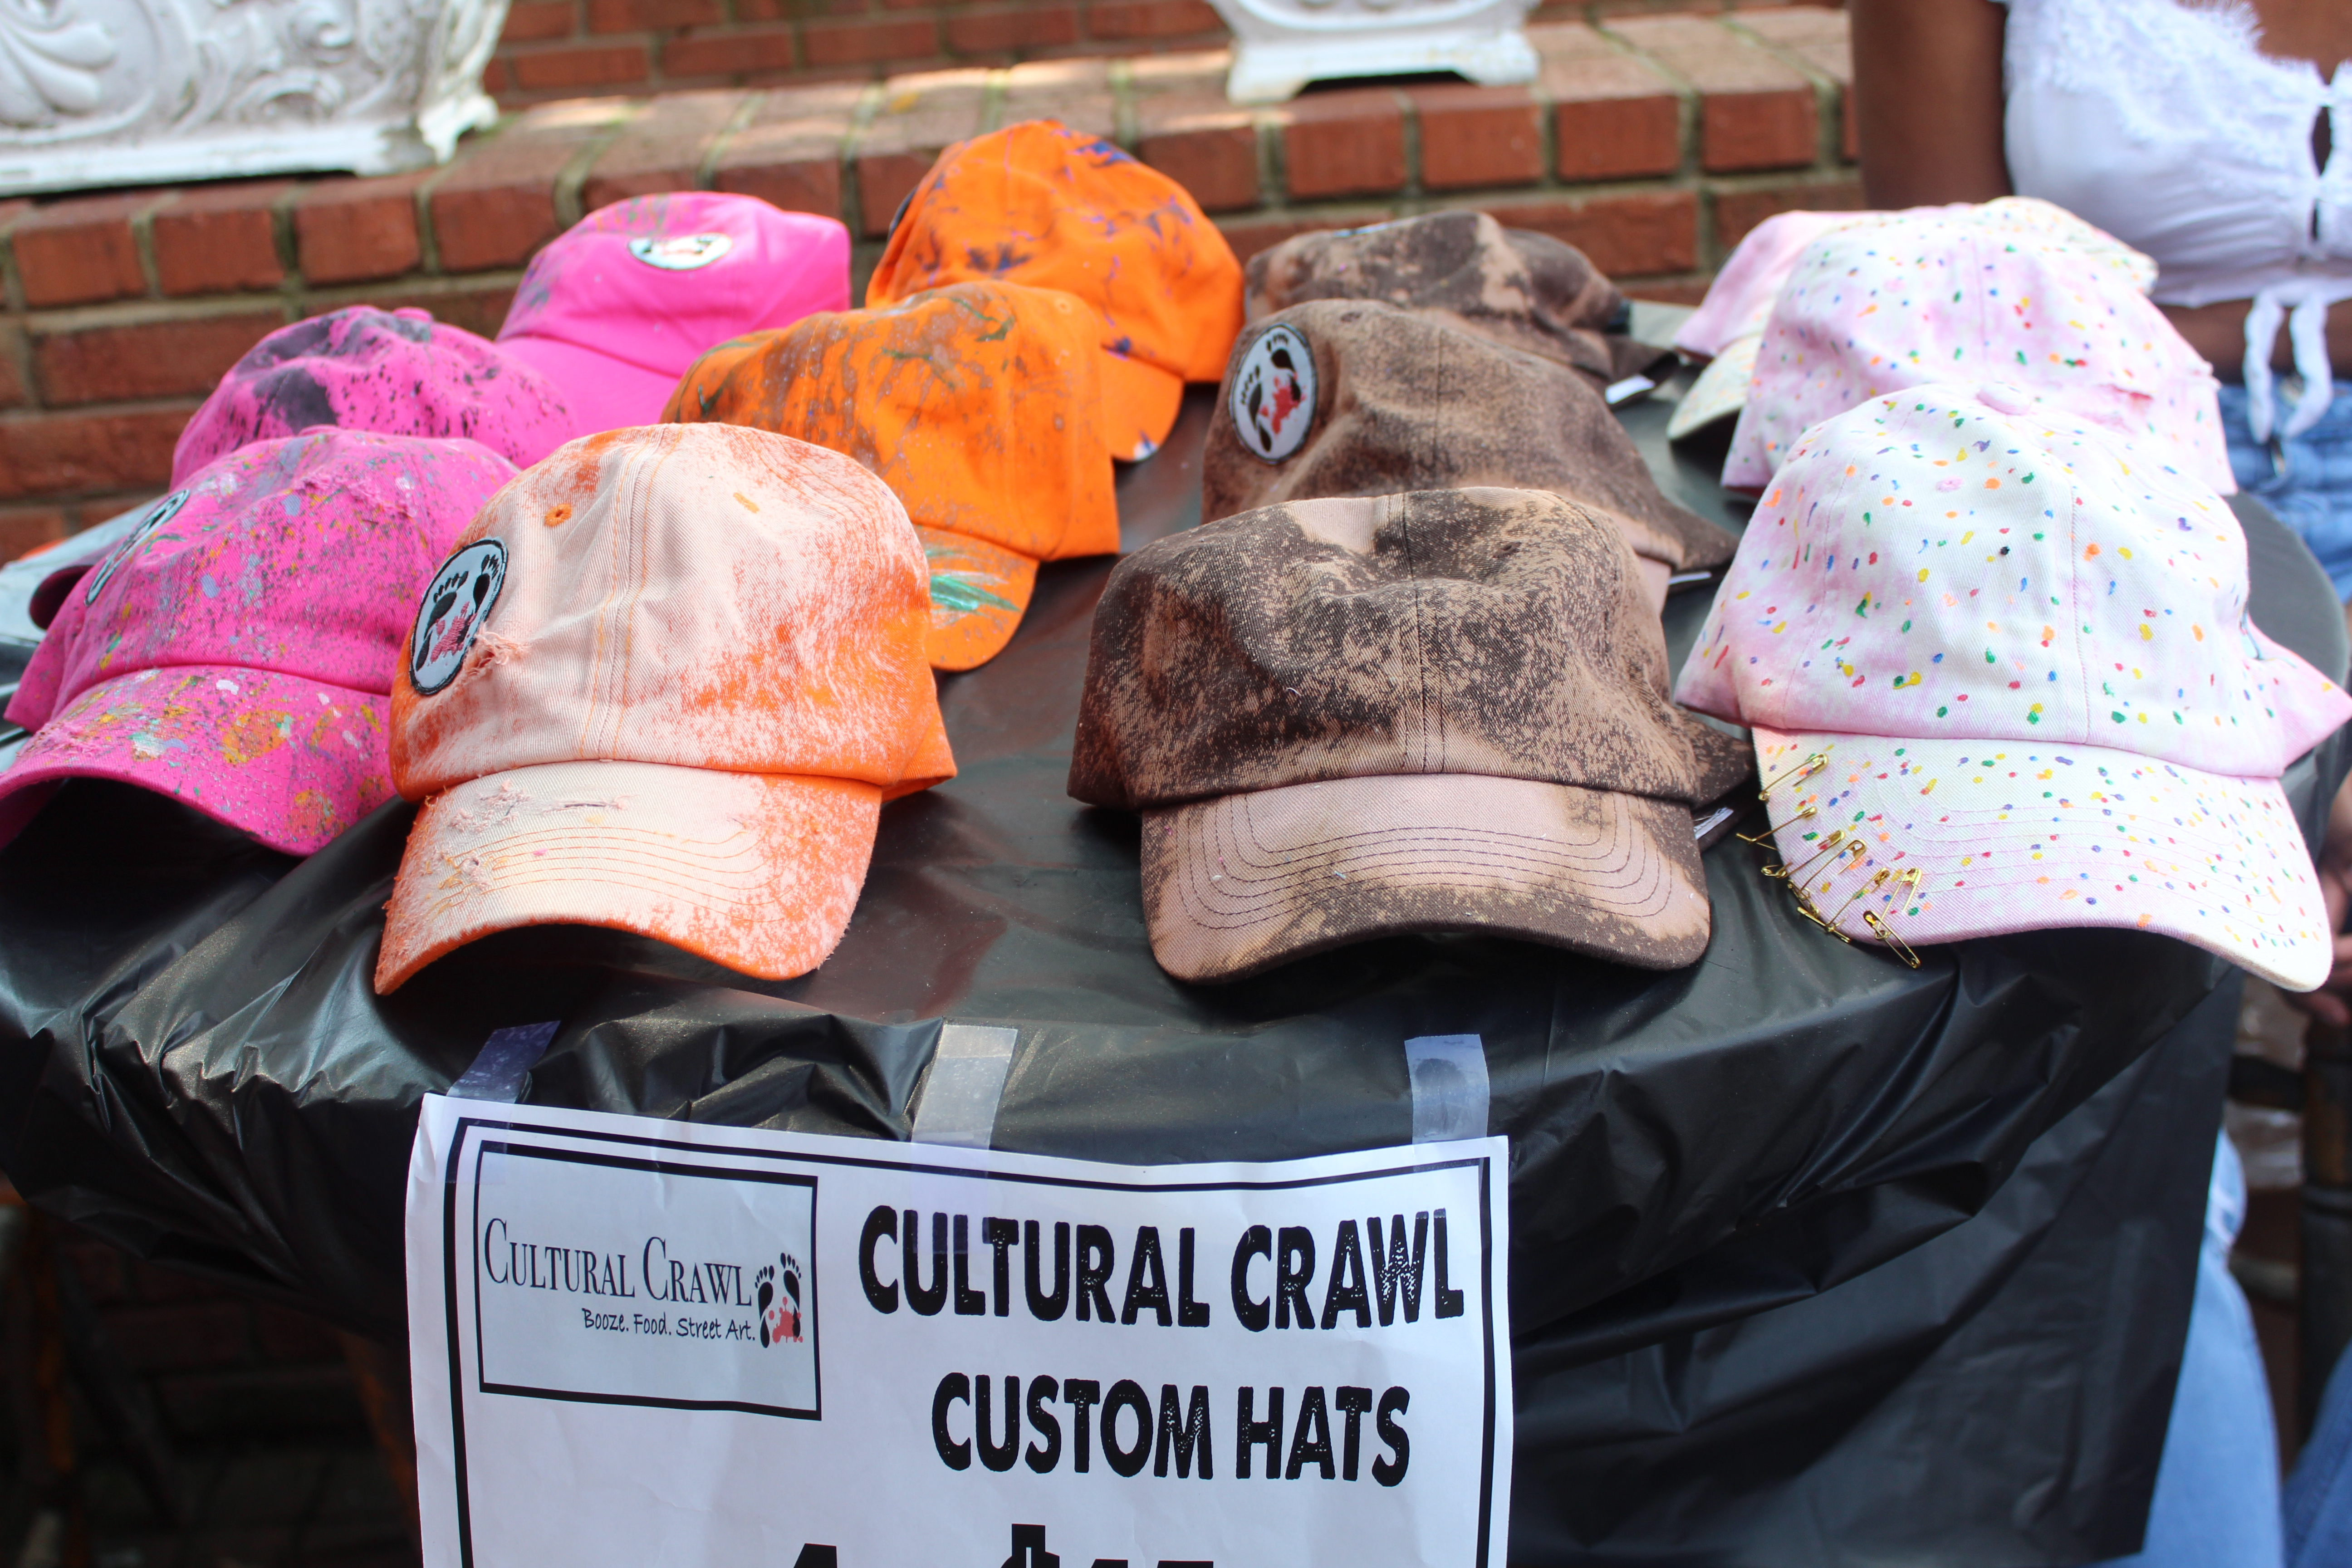 Cultural Crawl Custom Hats